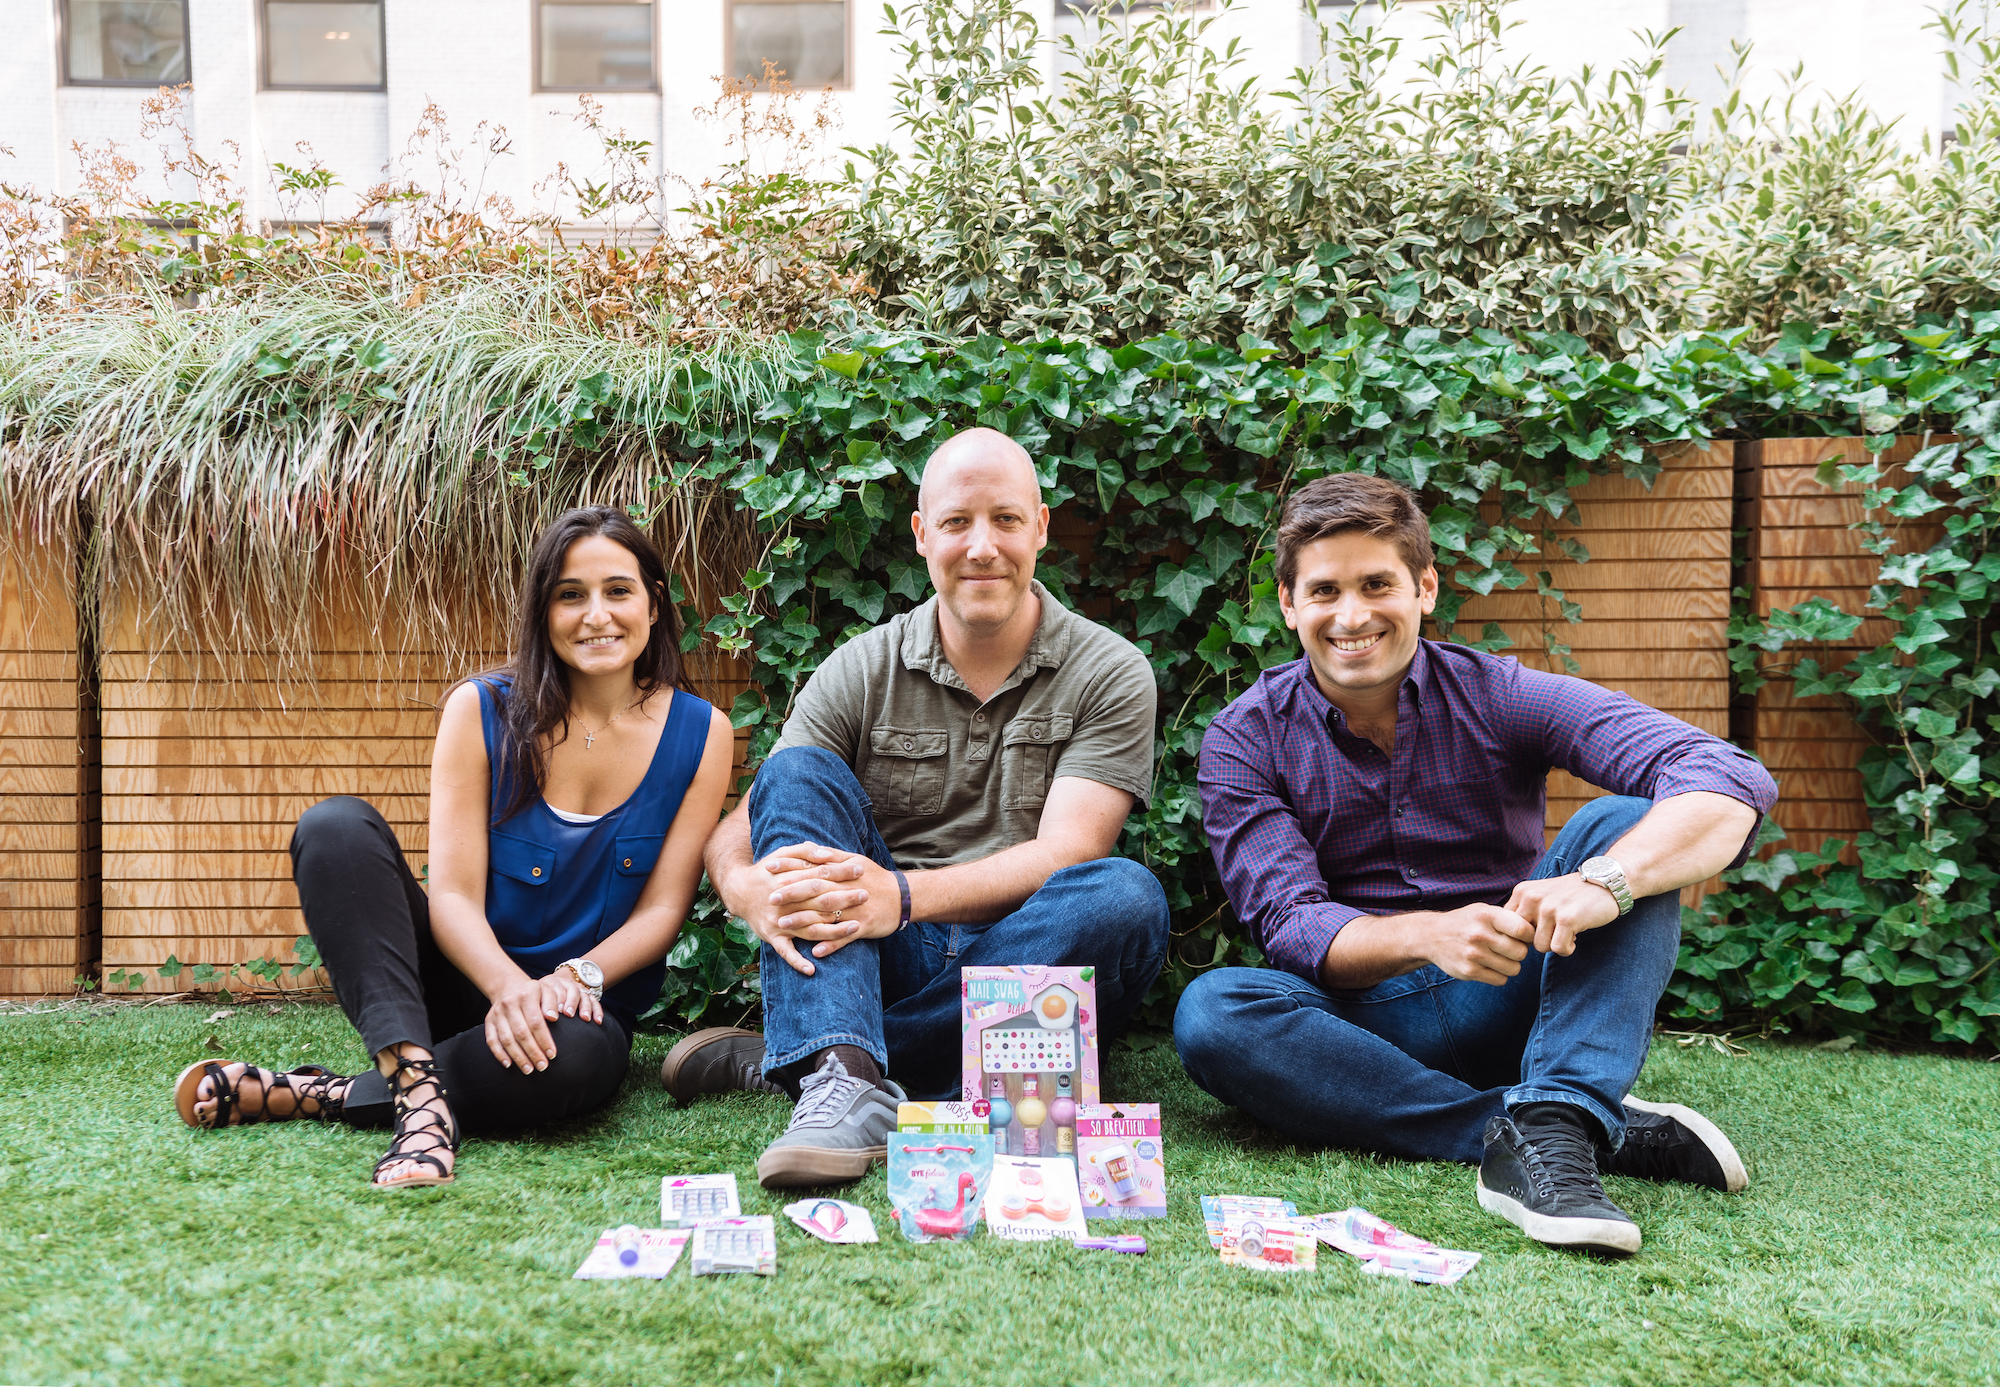 Taste Beauty co-founders Sabrina Vertucci, Tom Crowley and Alex Fogelson (left to right)